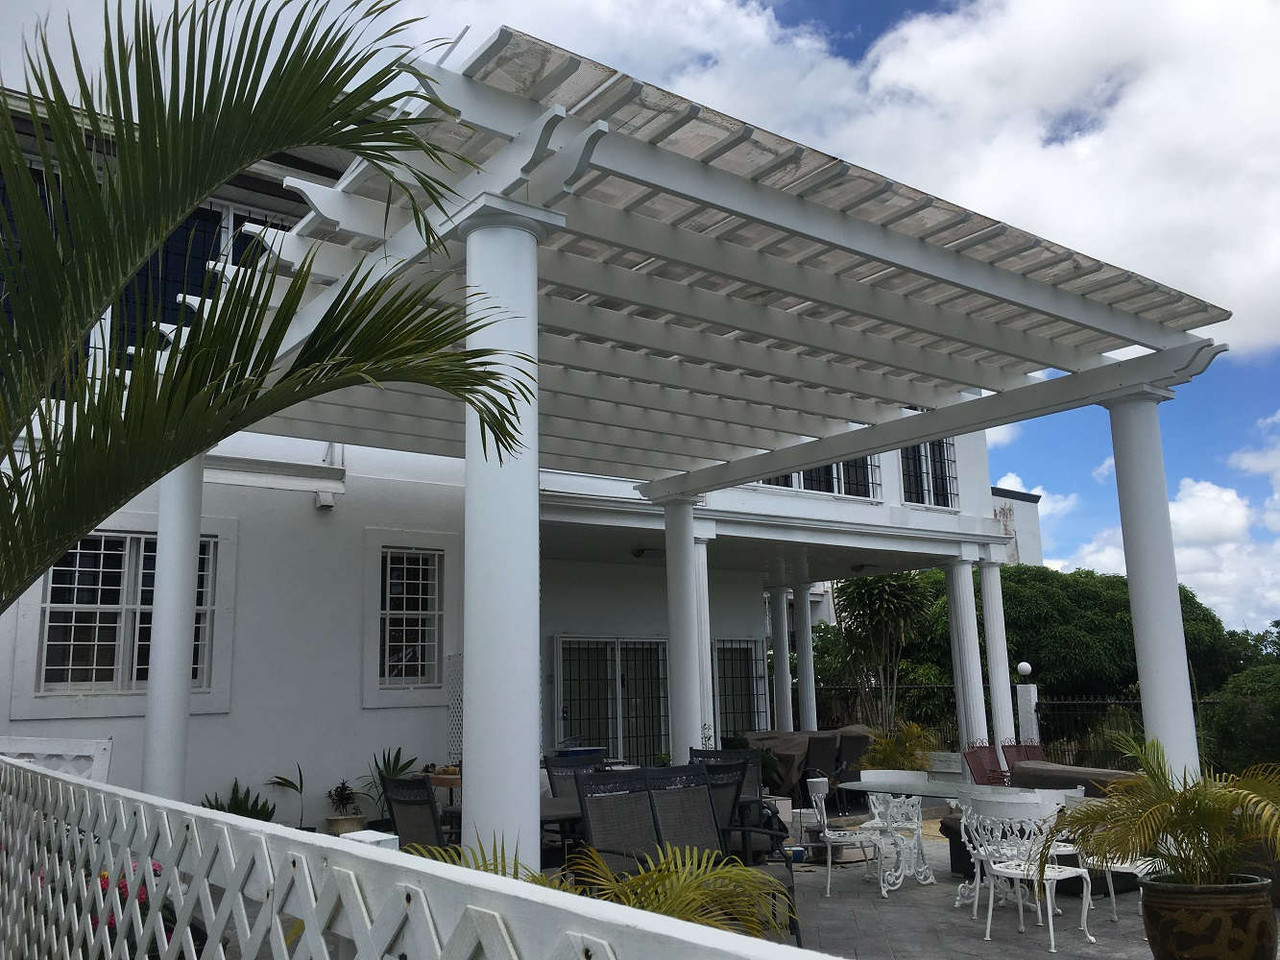 20x20 Freestanding Fiberglass Pergola Kit with Round Columns and Infinity Canopy, Medley, Florida